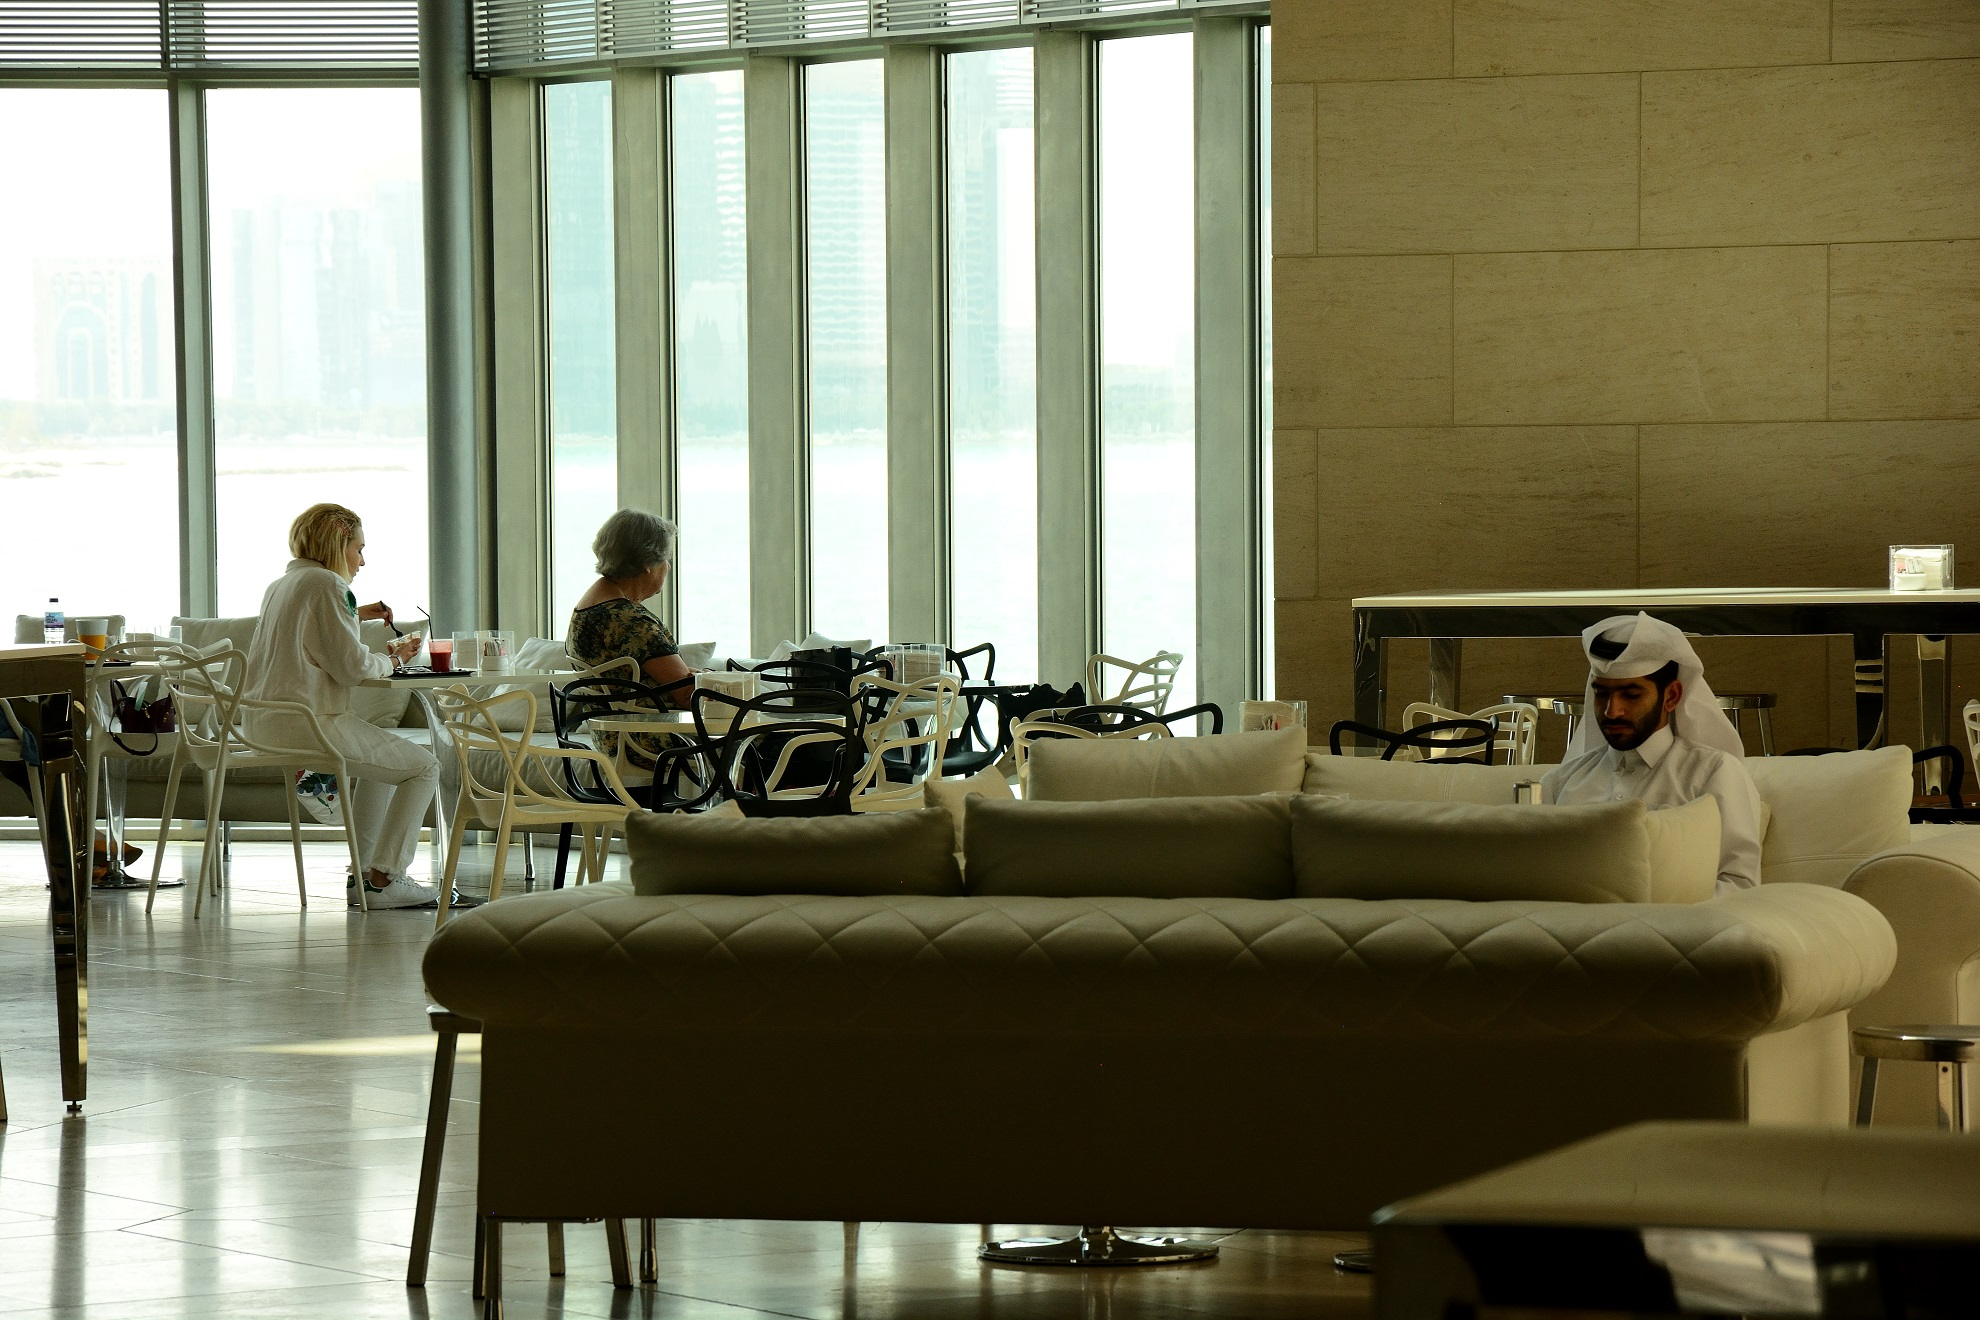 Visitors take a break in the lounge of the museum